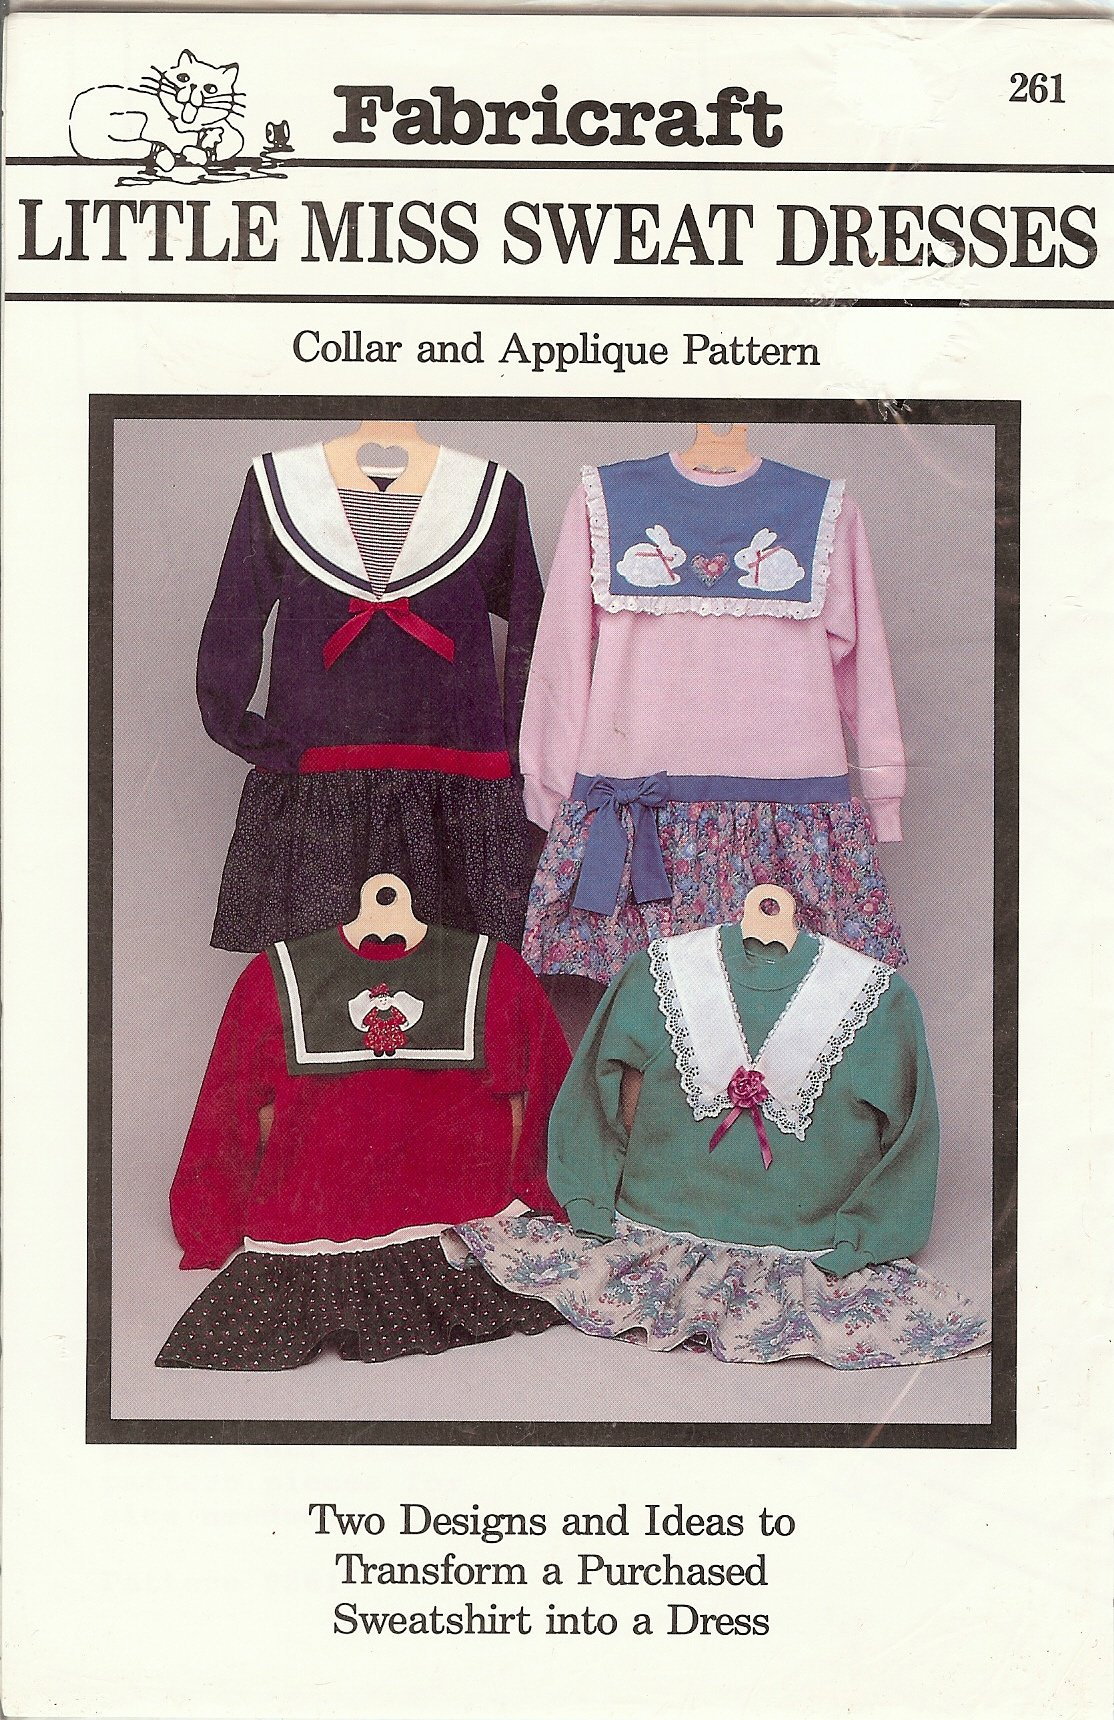 Little Miss Sweat Dresses (Collar and Applique Pattern, Two Designs and Ideas to Transform a Purchased Sweatshirt into a Dress)